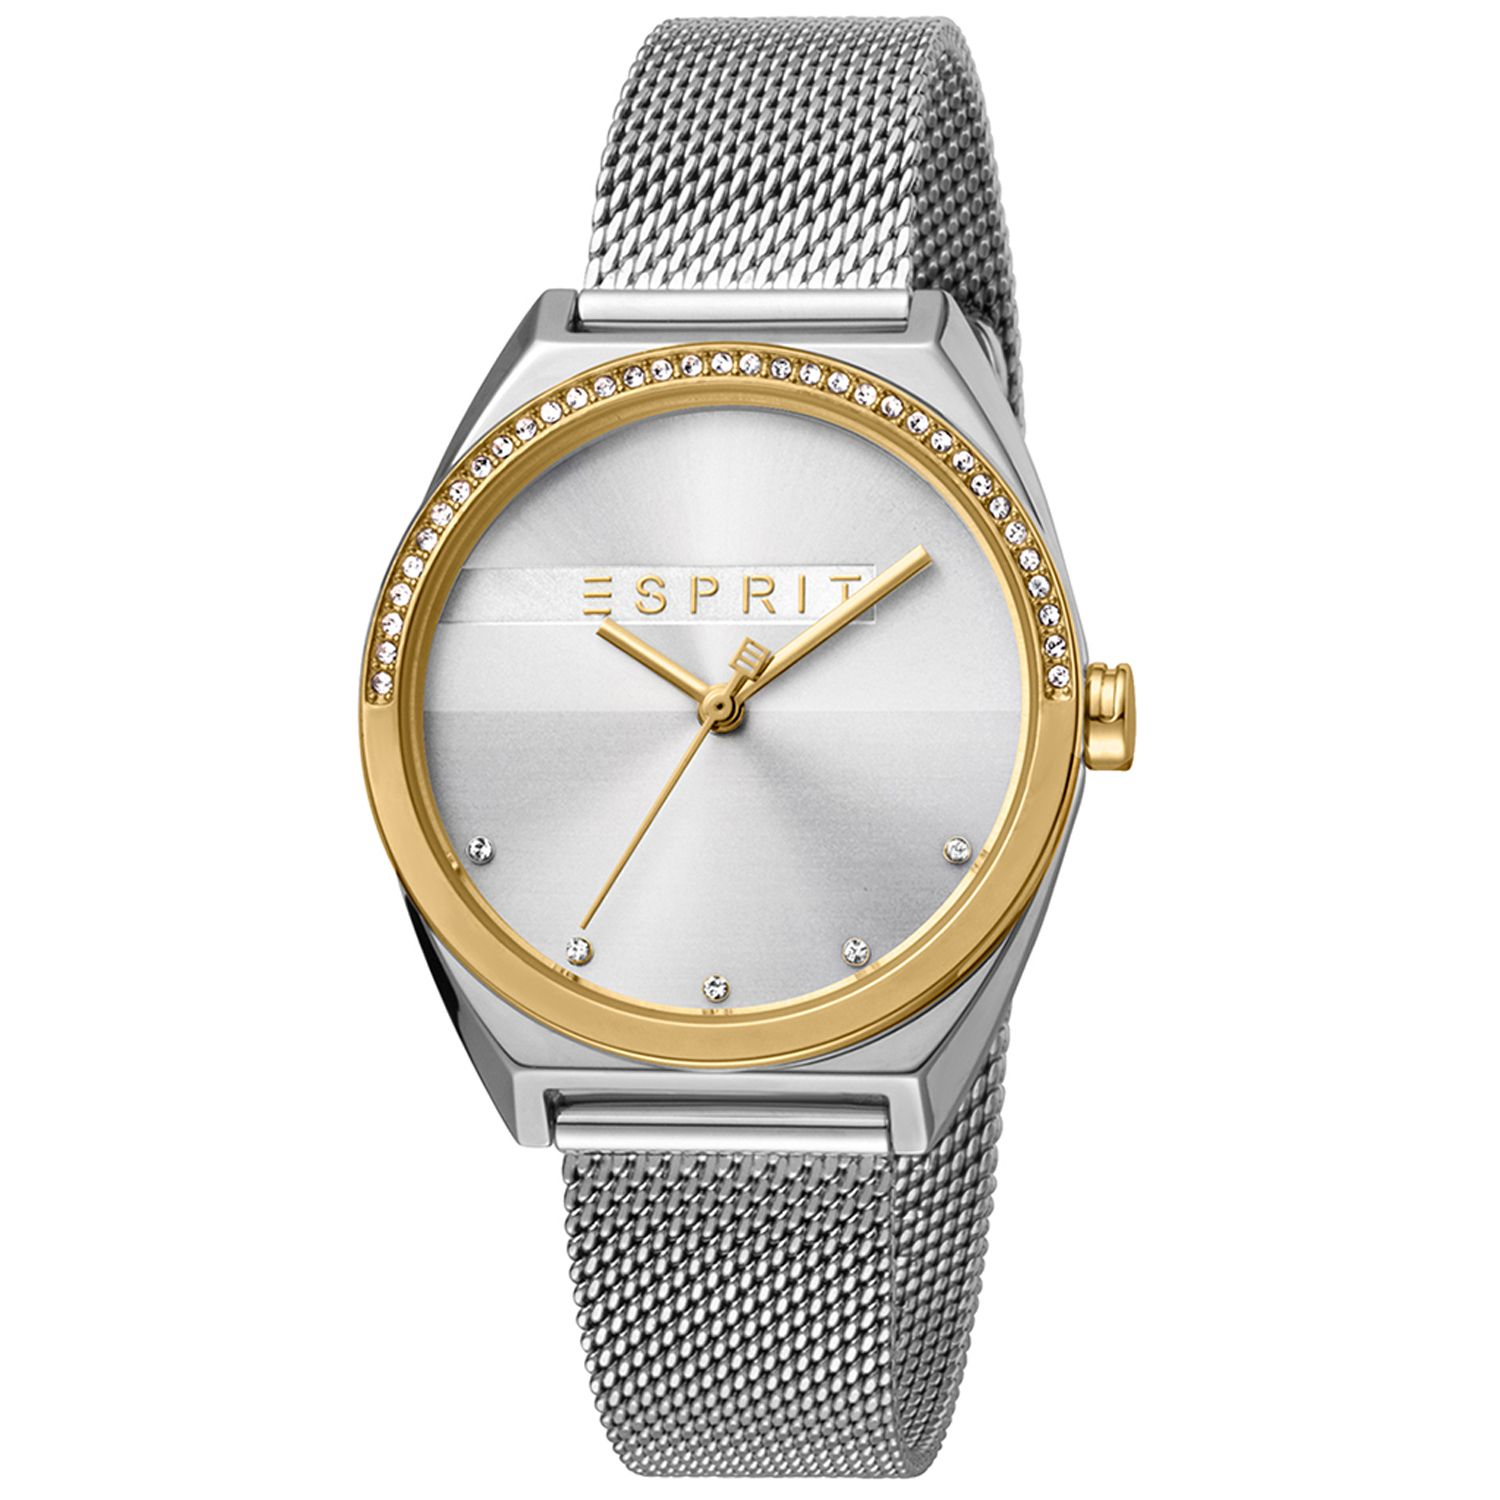 Esprit Watch ES1L057M0075 Women Silver